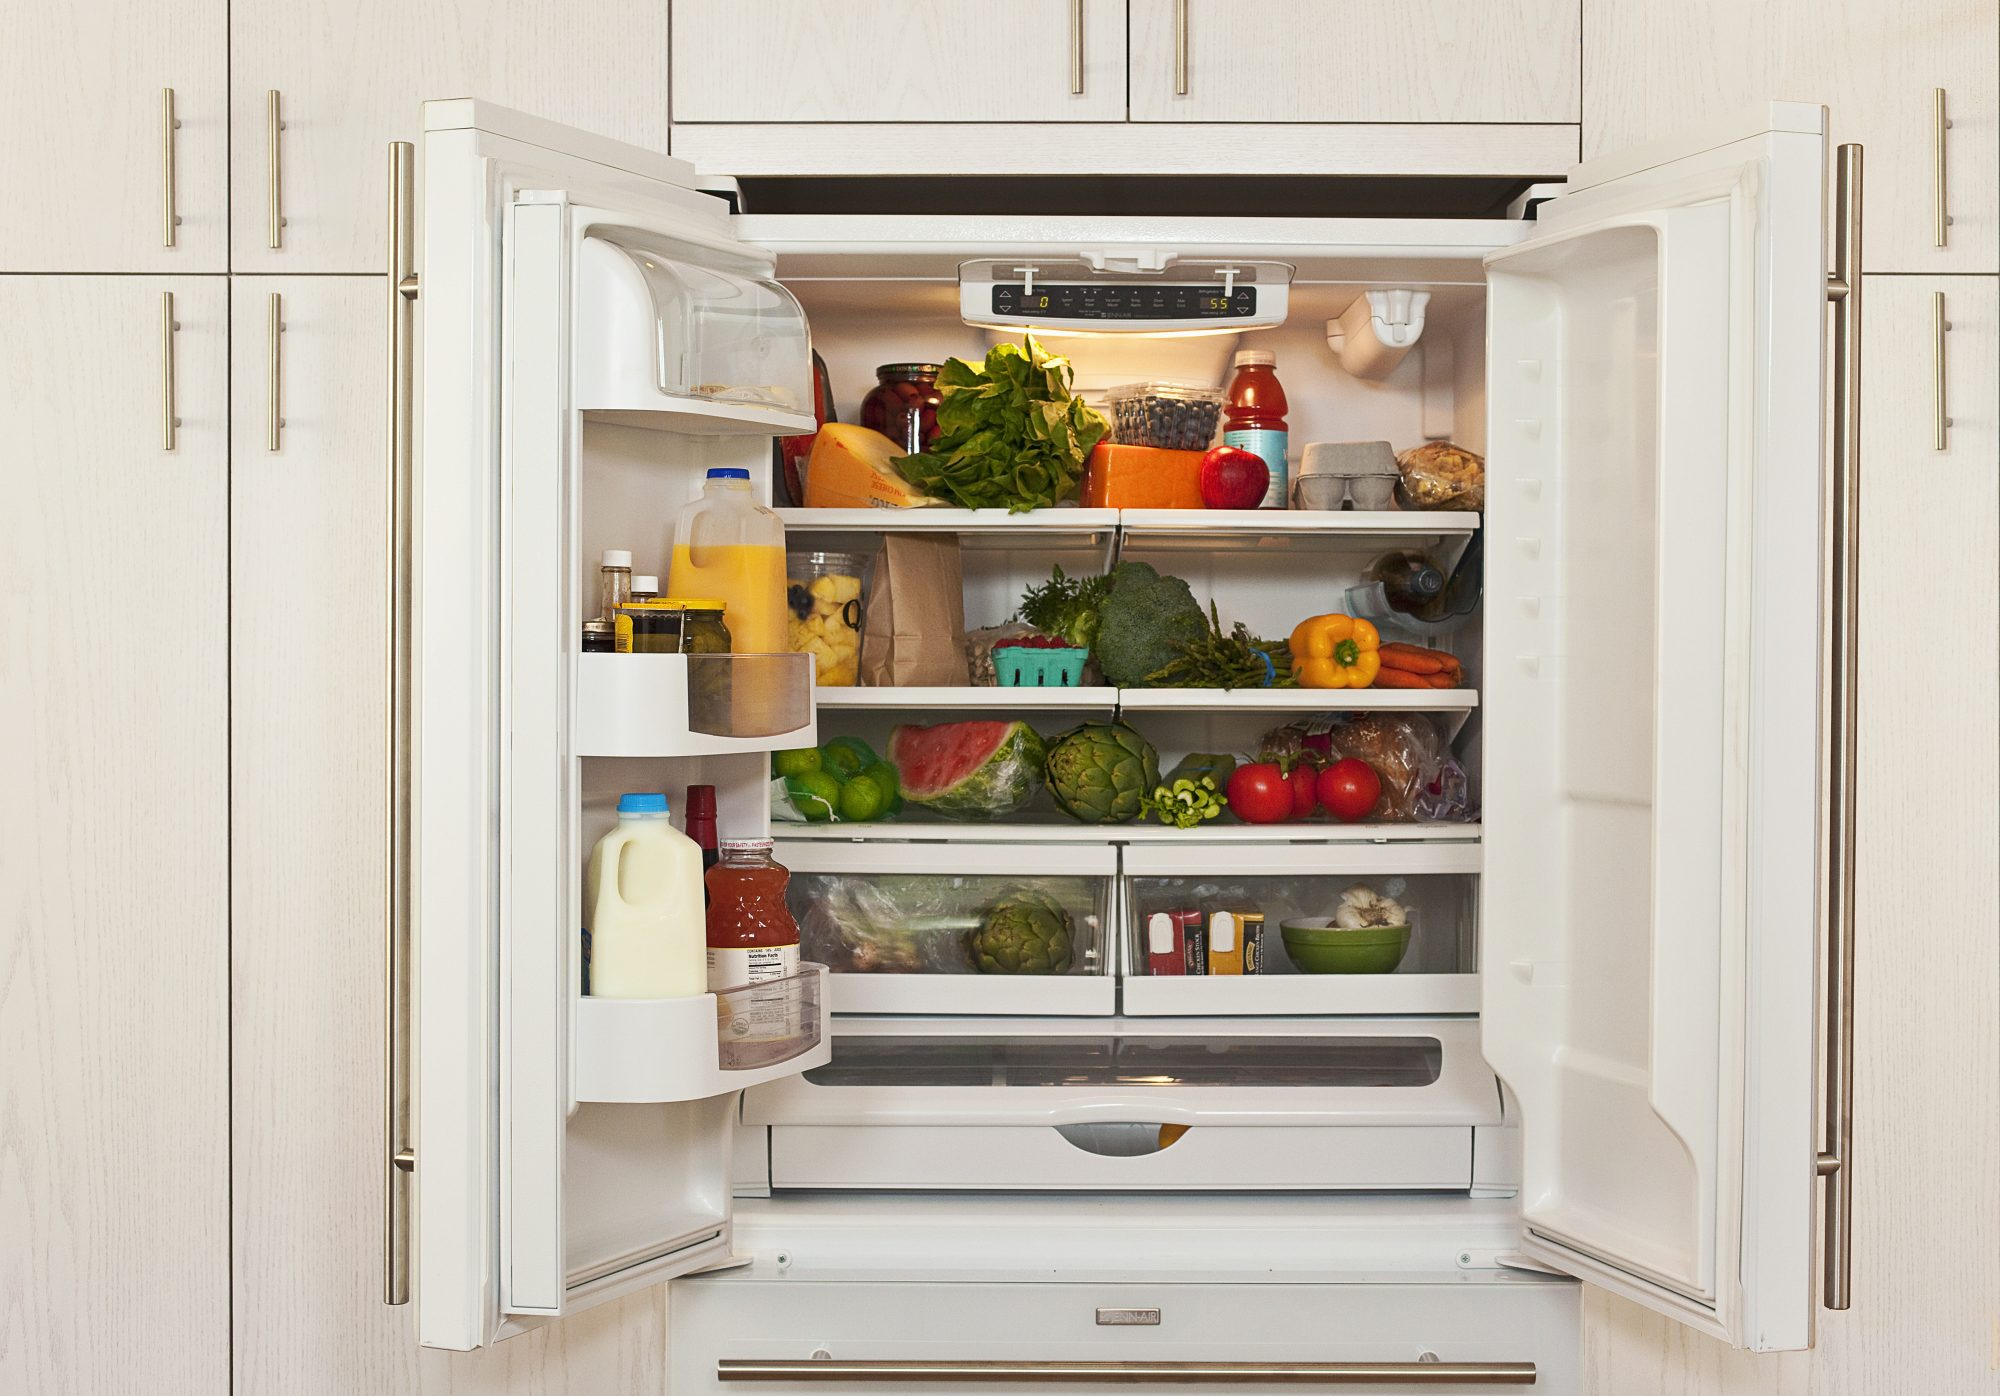 refrigerator getty 7/20/20